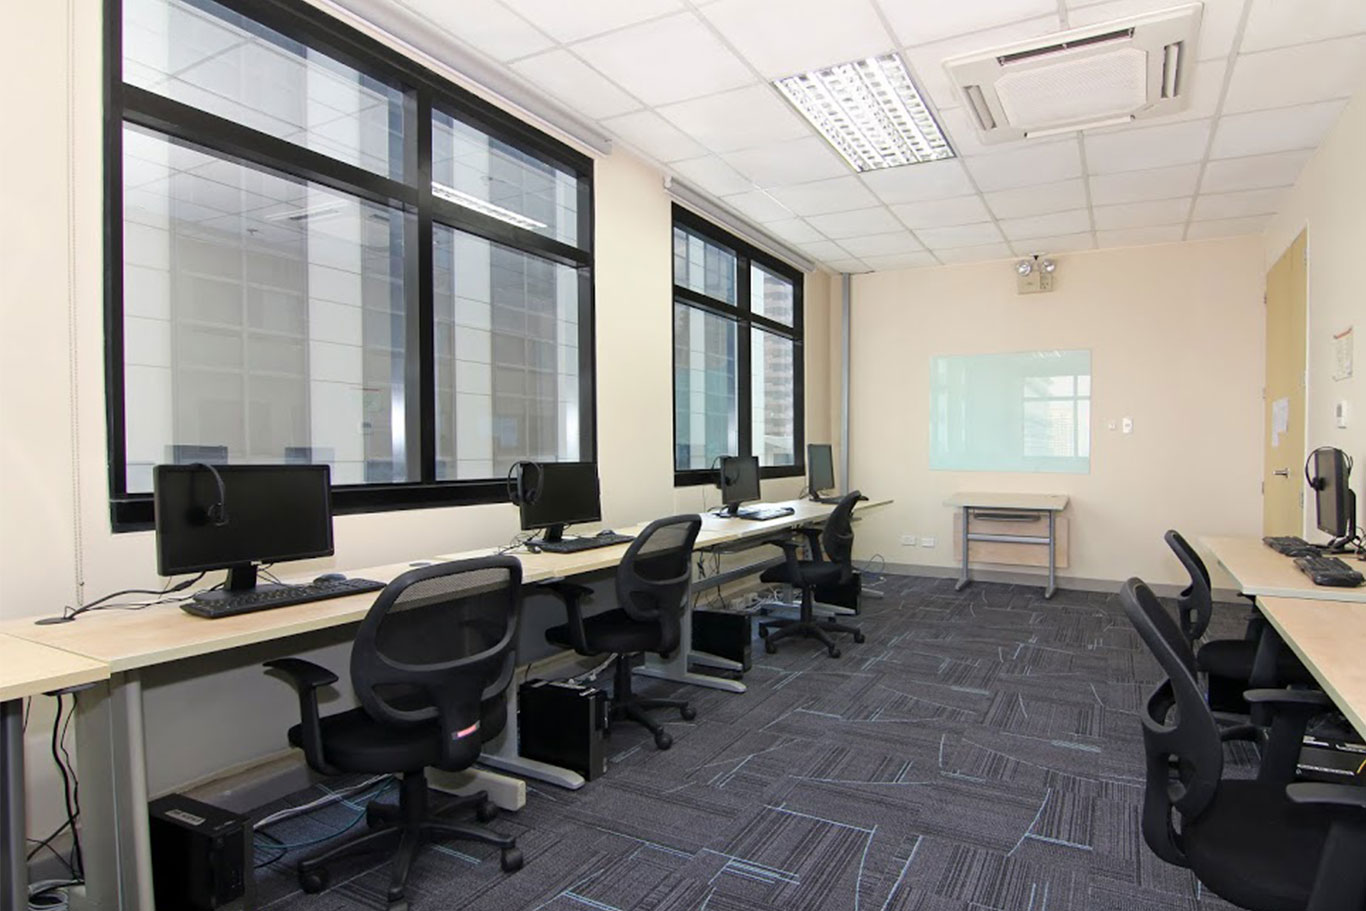 KMC Picadilly Star, BGC, Taguig, Manila - Private Office Space for Rent